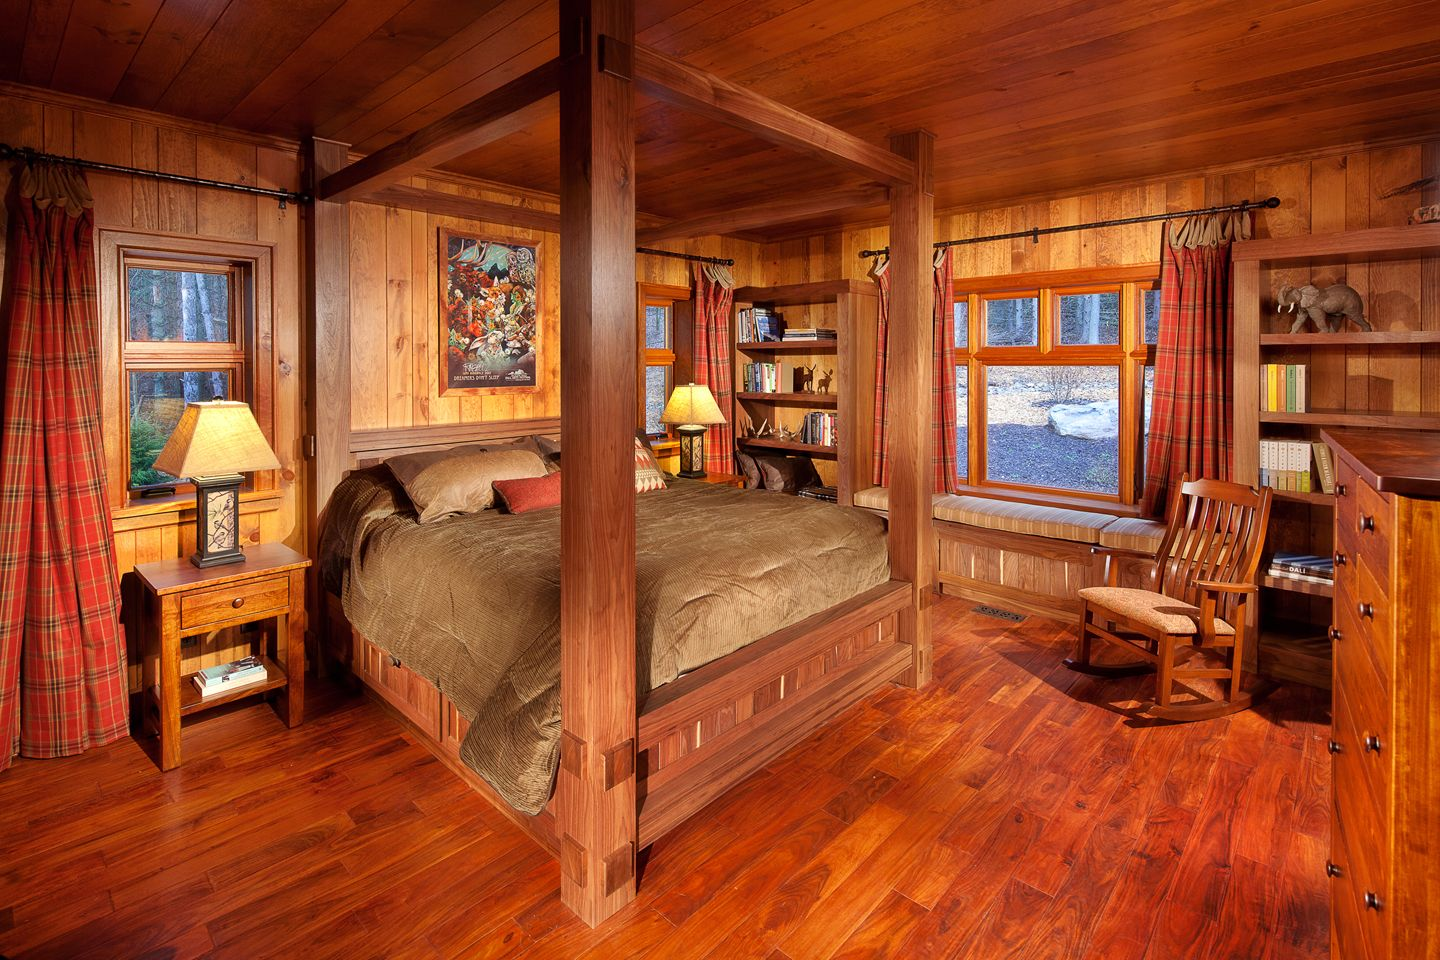 Decor Rustic Cabin Decor Is Beautiful With Furniture From